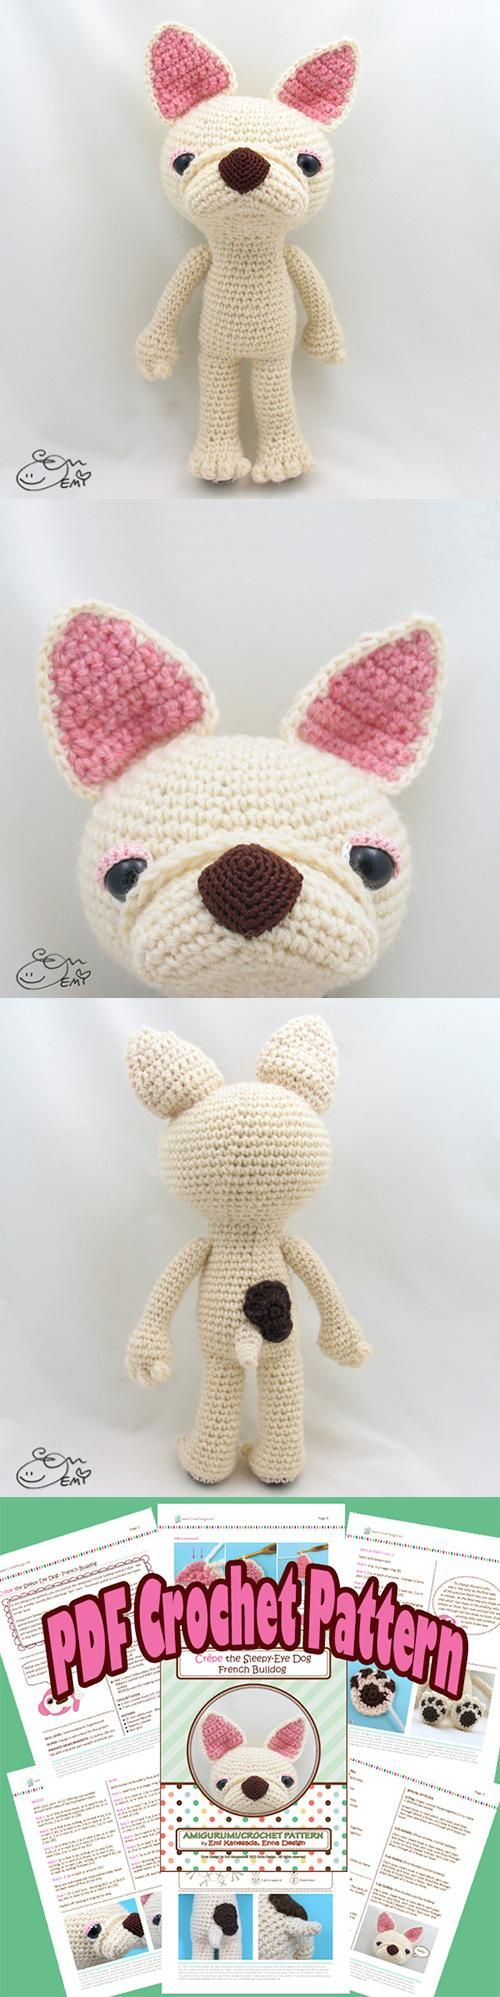 Crepe the French Bulldog amigurumi pattern by Emi Kanesada ...